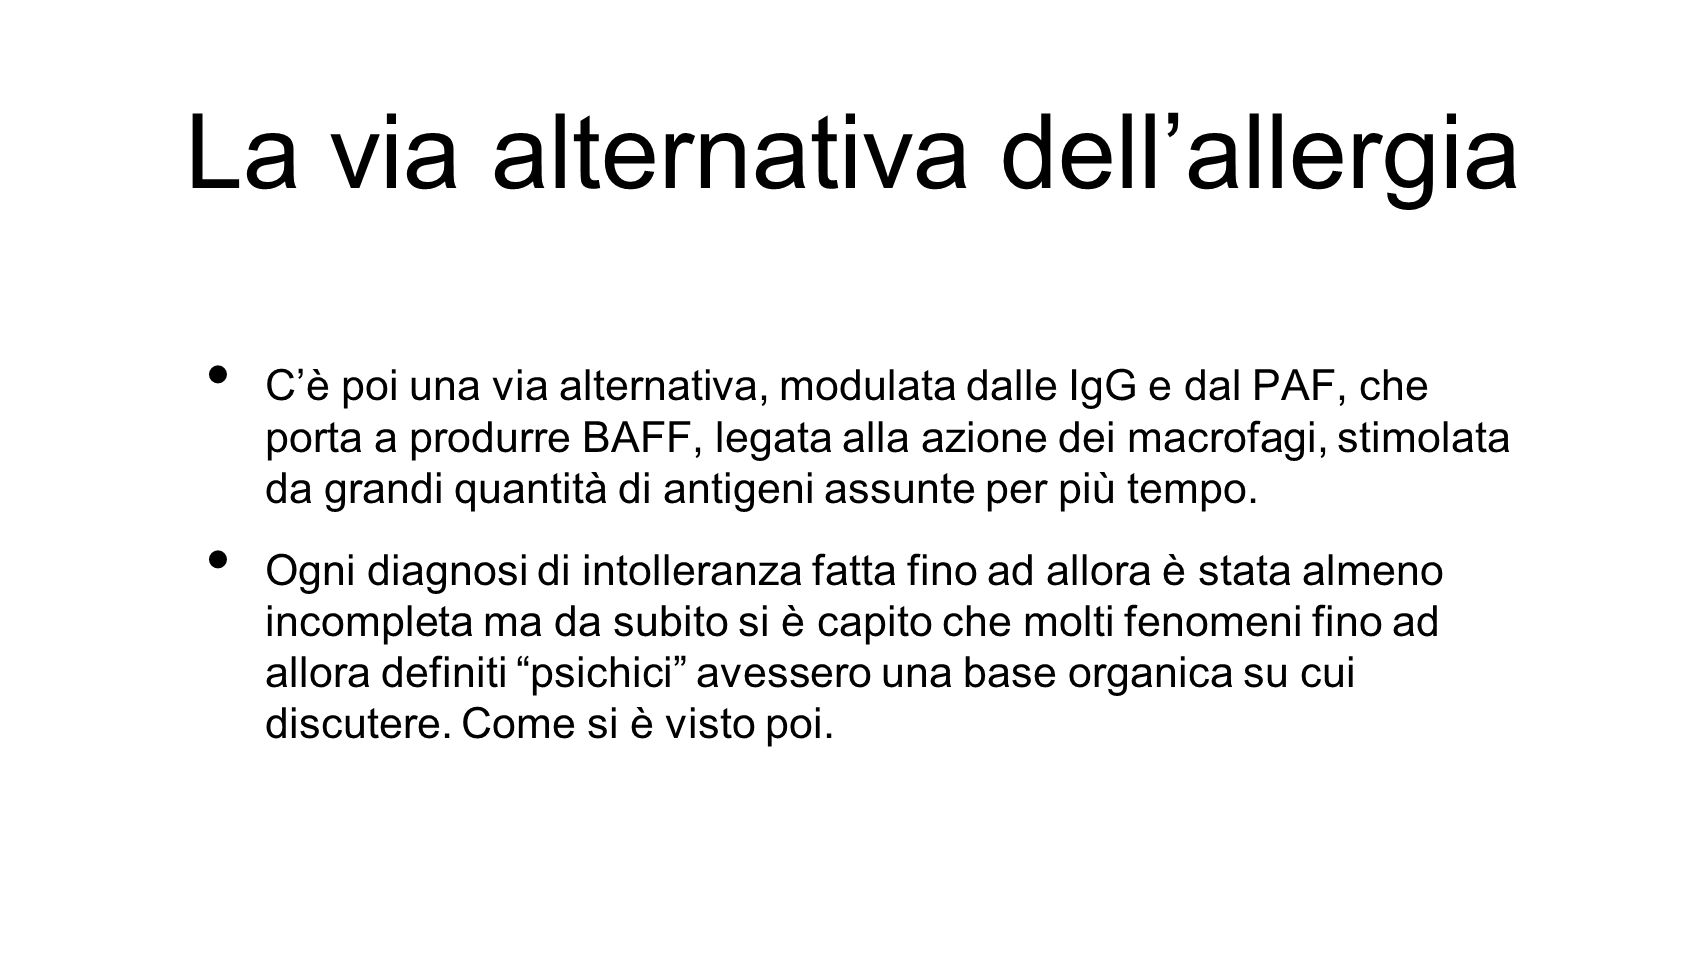 La via alternativa dell'allergia